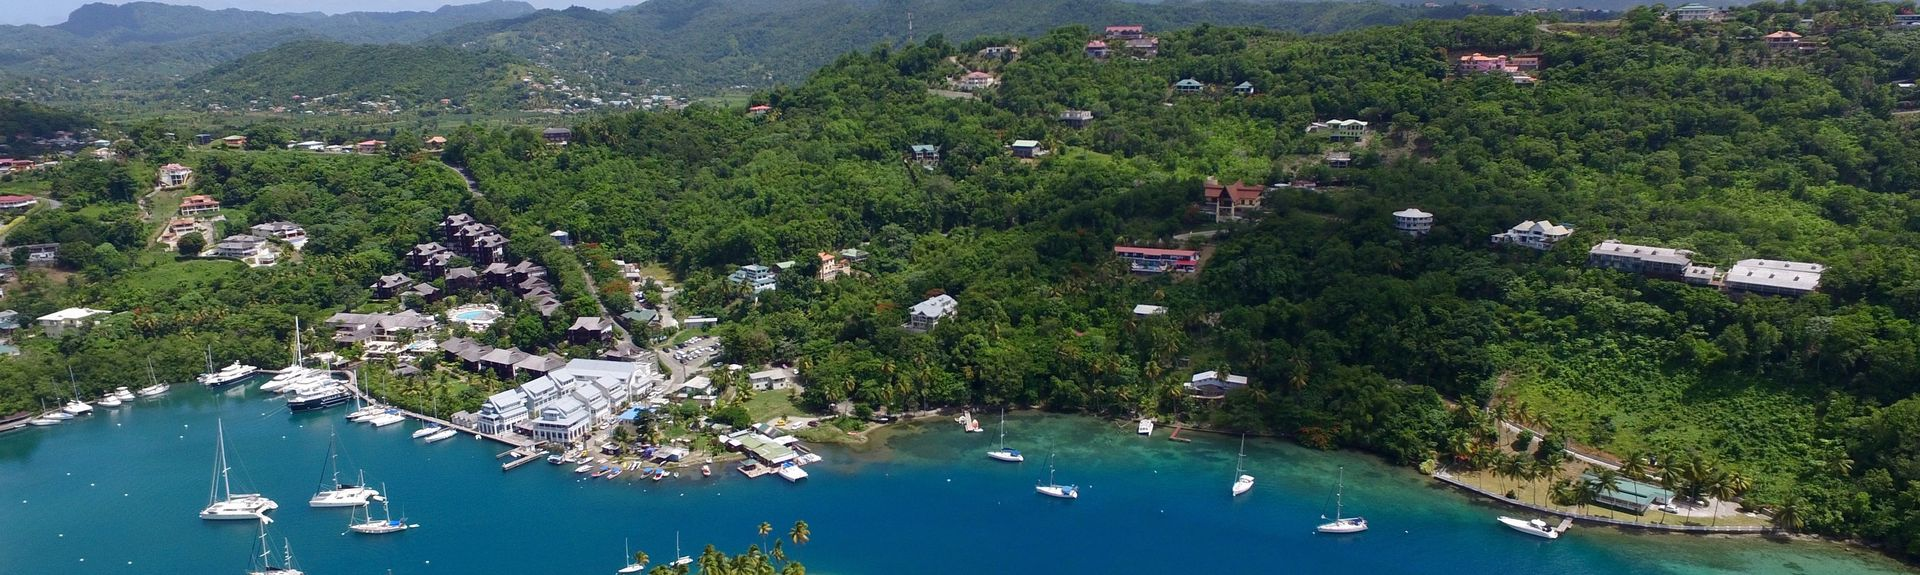 Corinthe, Gros Islet, St. Lucia